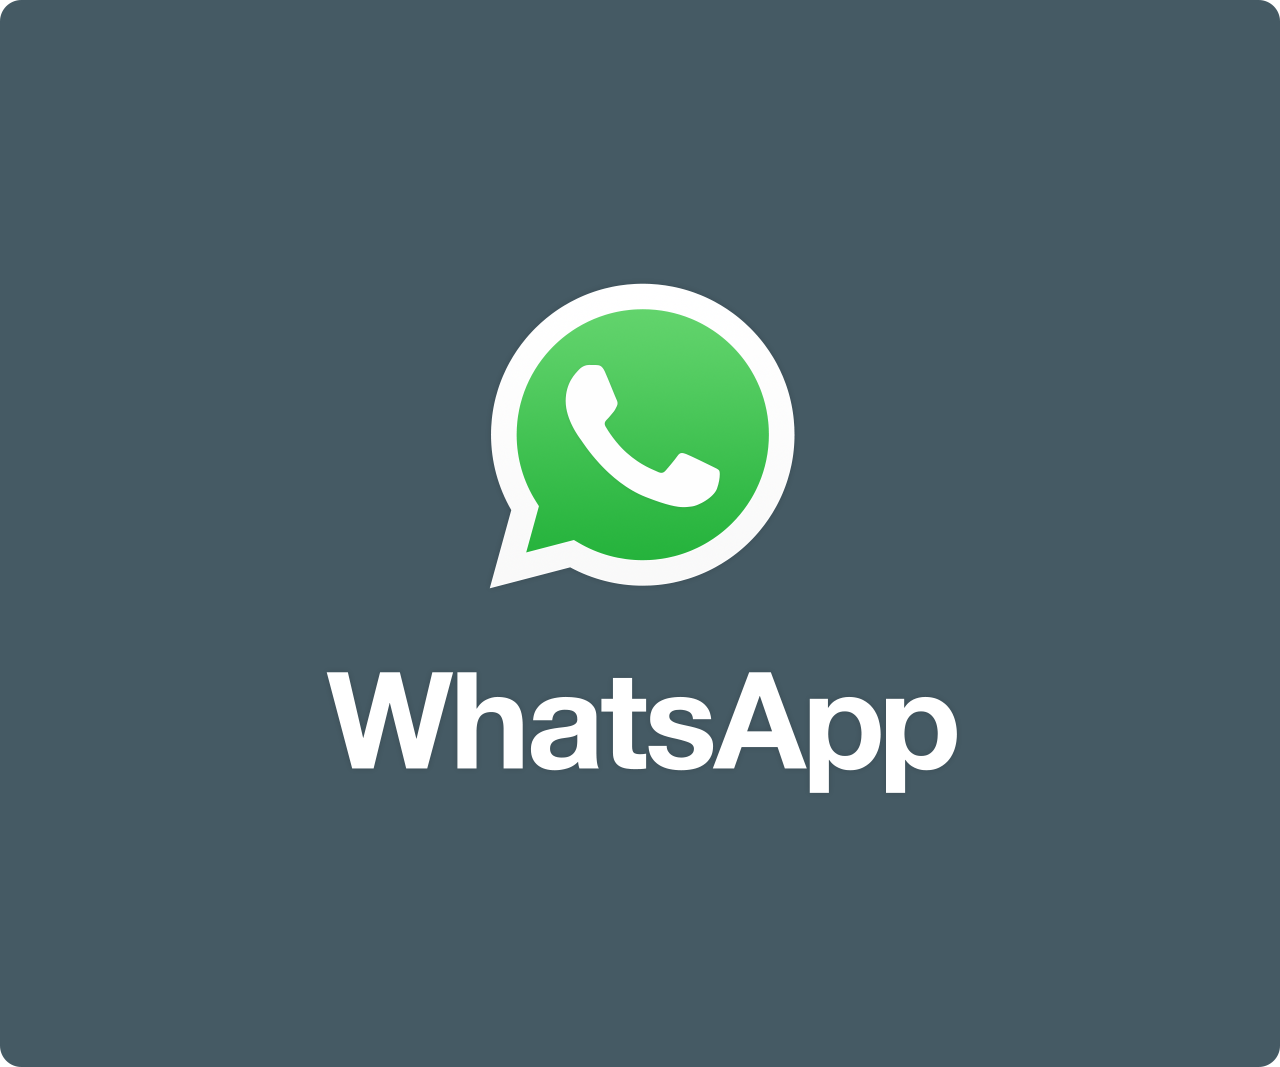 WhatsApp announced to give more power to group admins